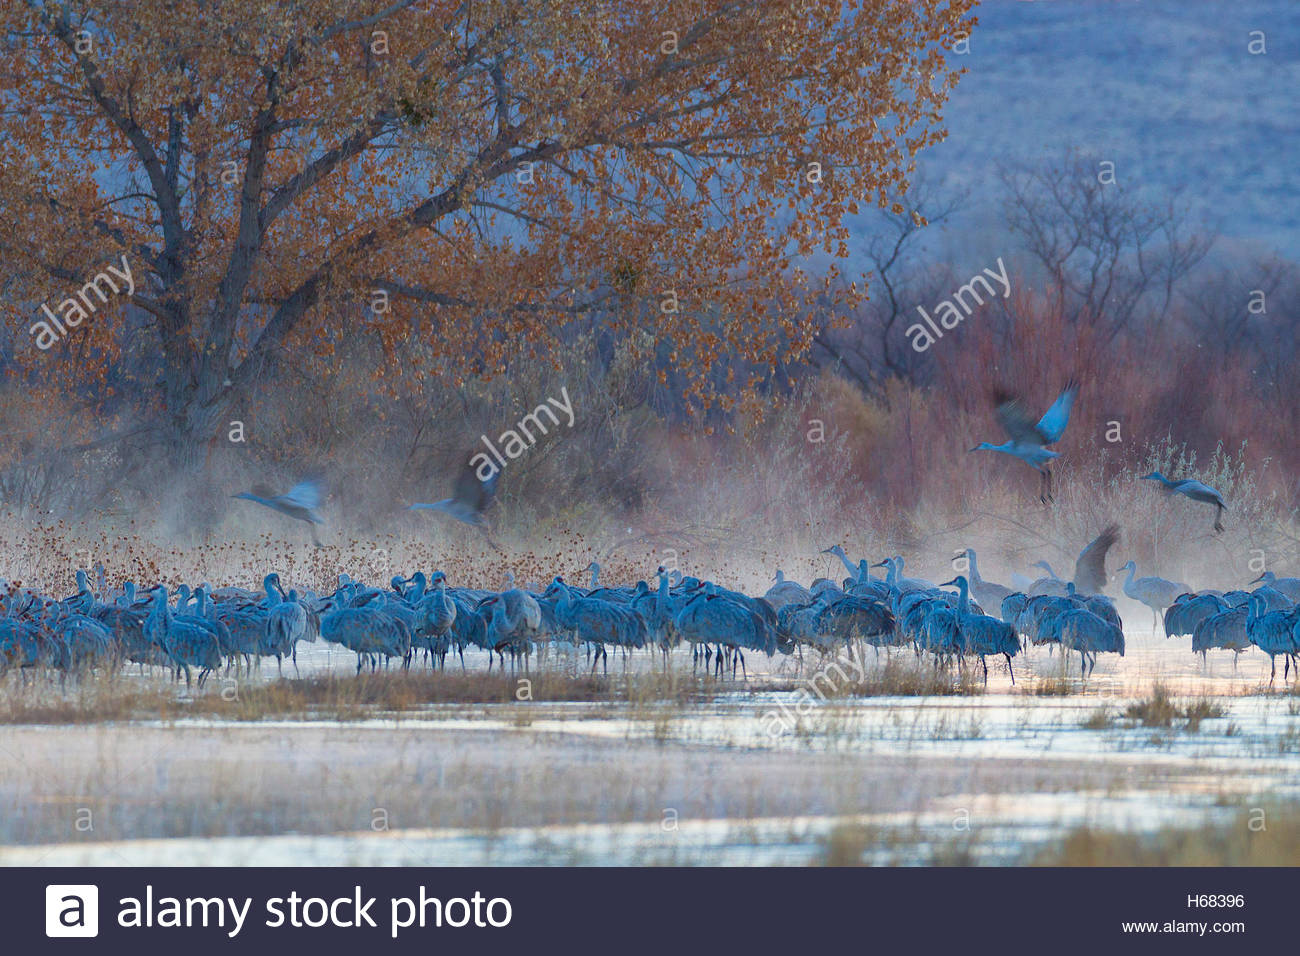 Dozens of sandhill cranes (Grus canadensis) rest on a foggy pond in the Bosque del Apache National Wildlife Refuge - Stock Image